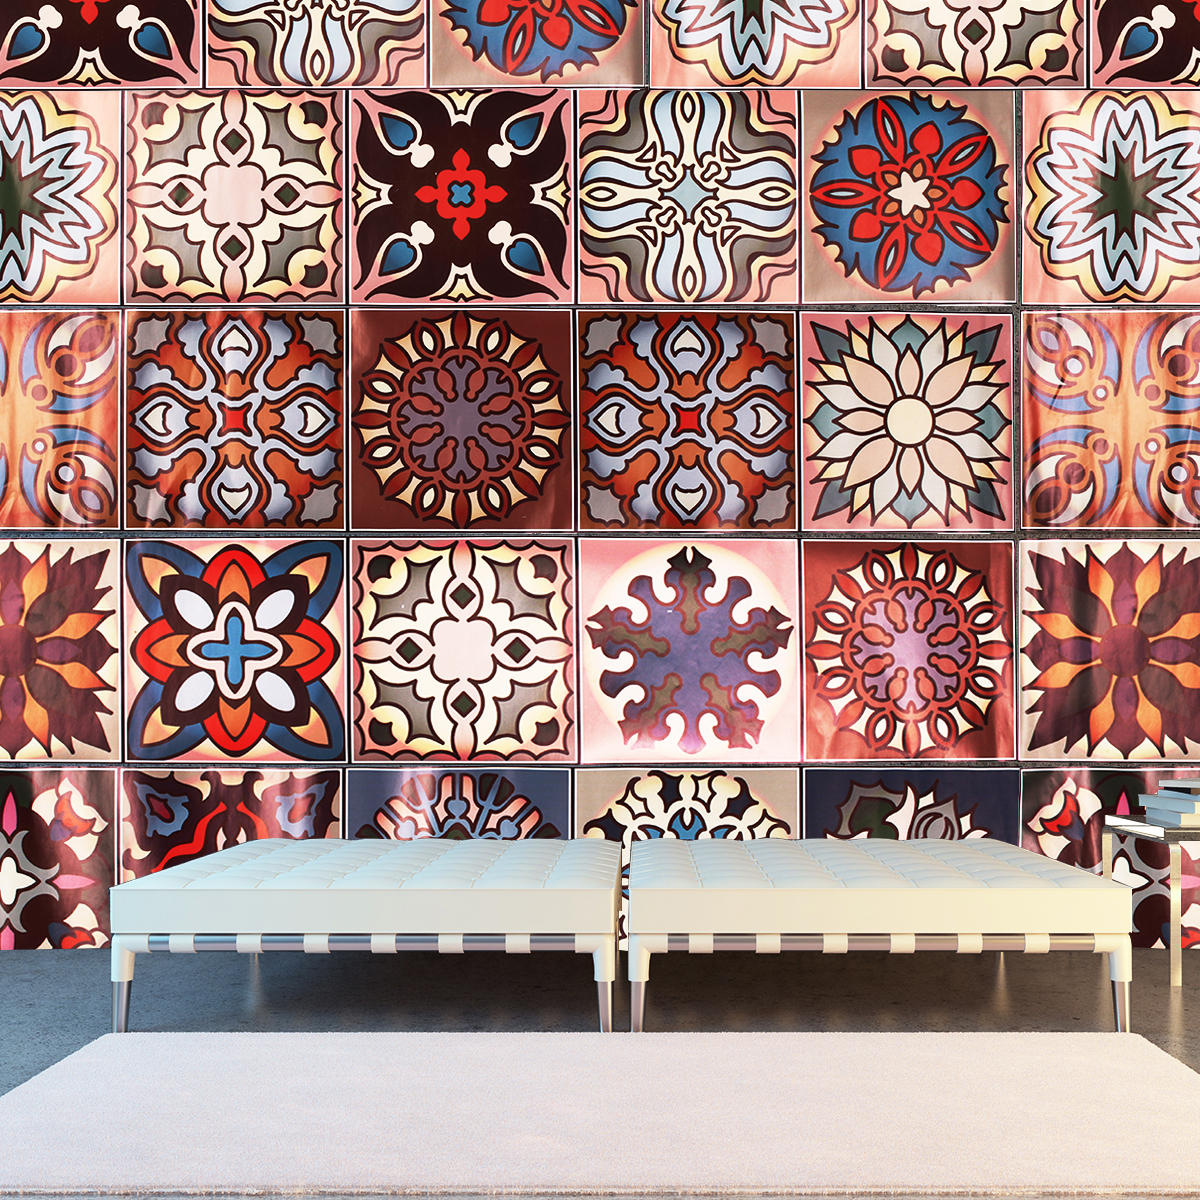 Moroccan Style Geometric Symmetry Self Adhesive Wall Sticker Kitchen Home Walls Decor